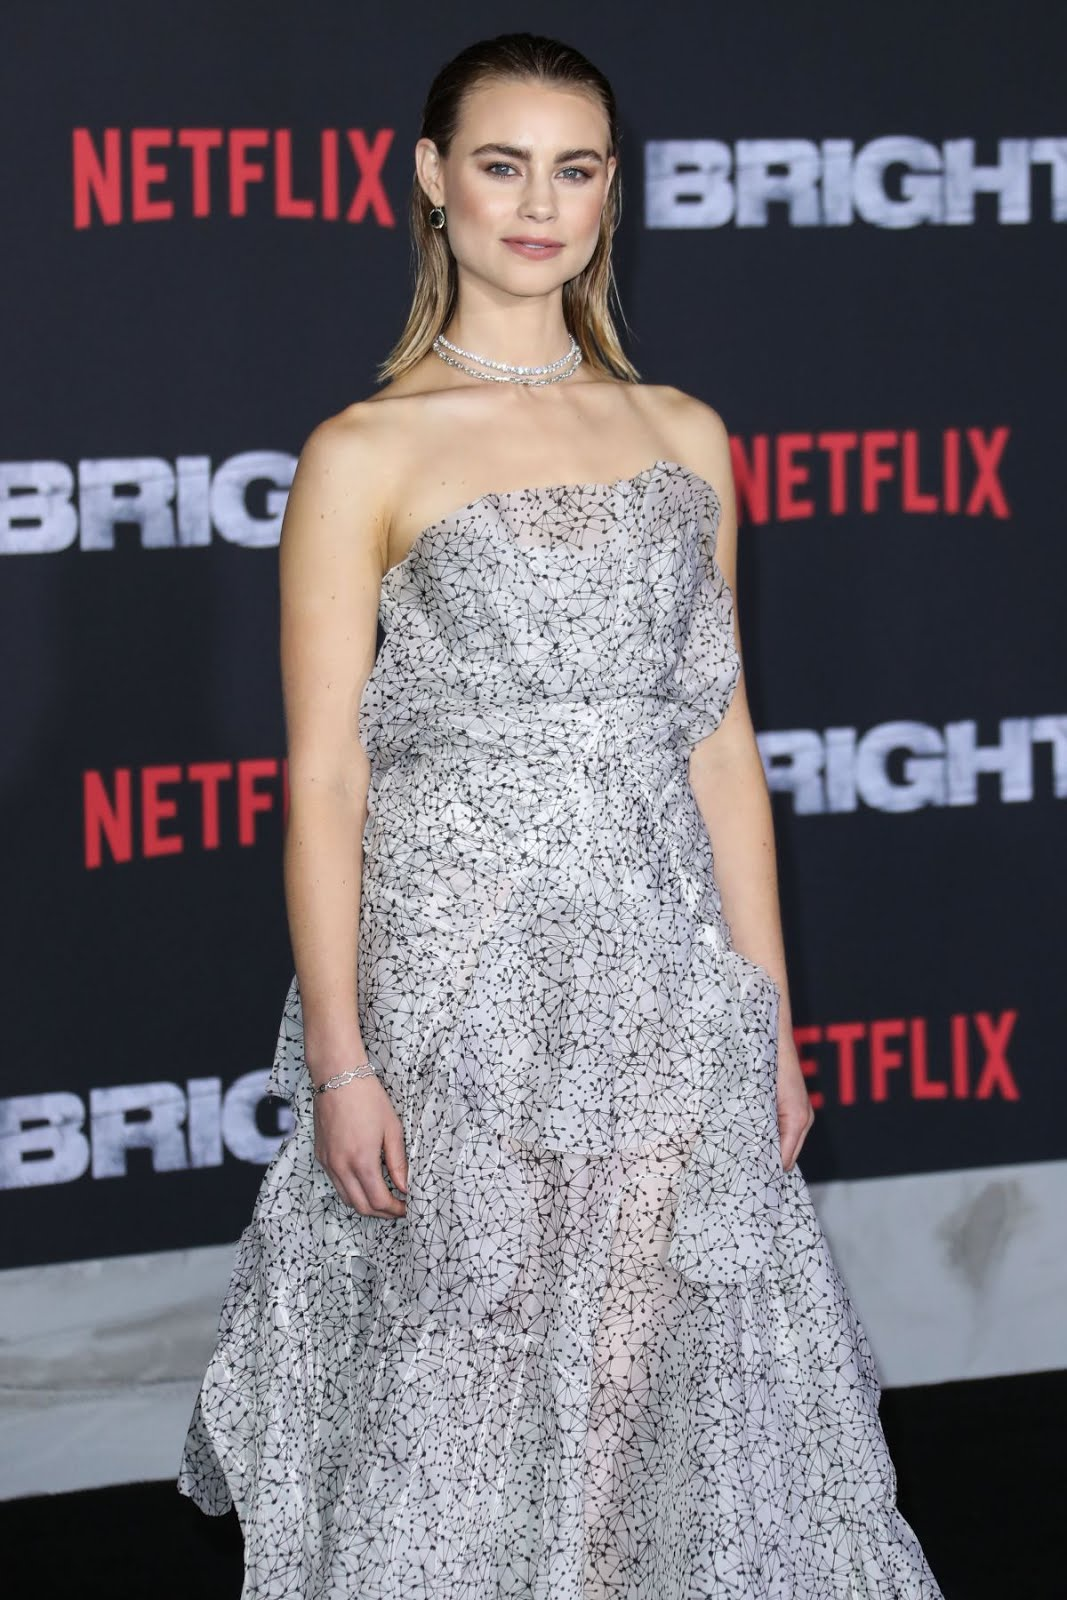 HD Wallpapers & Photos of Lucy Fry at Bright Premiere in Los Angeles